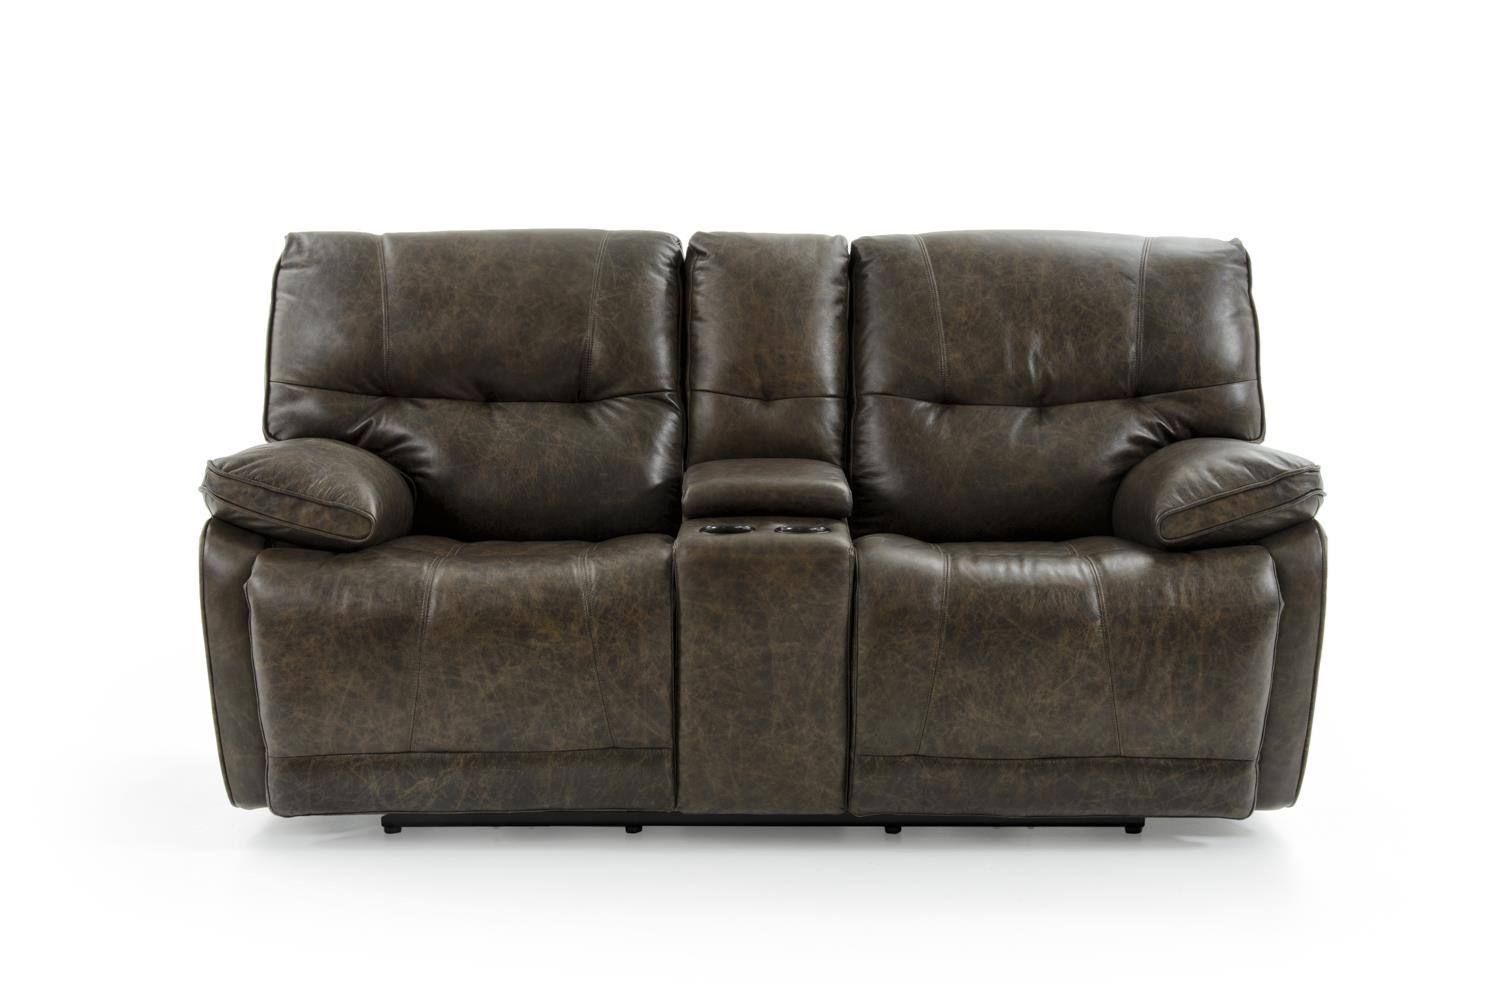 Casual Electric Motion Console Loveseat with Pillow Arms